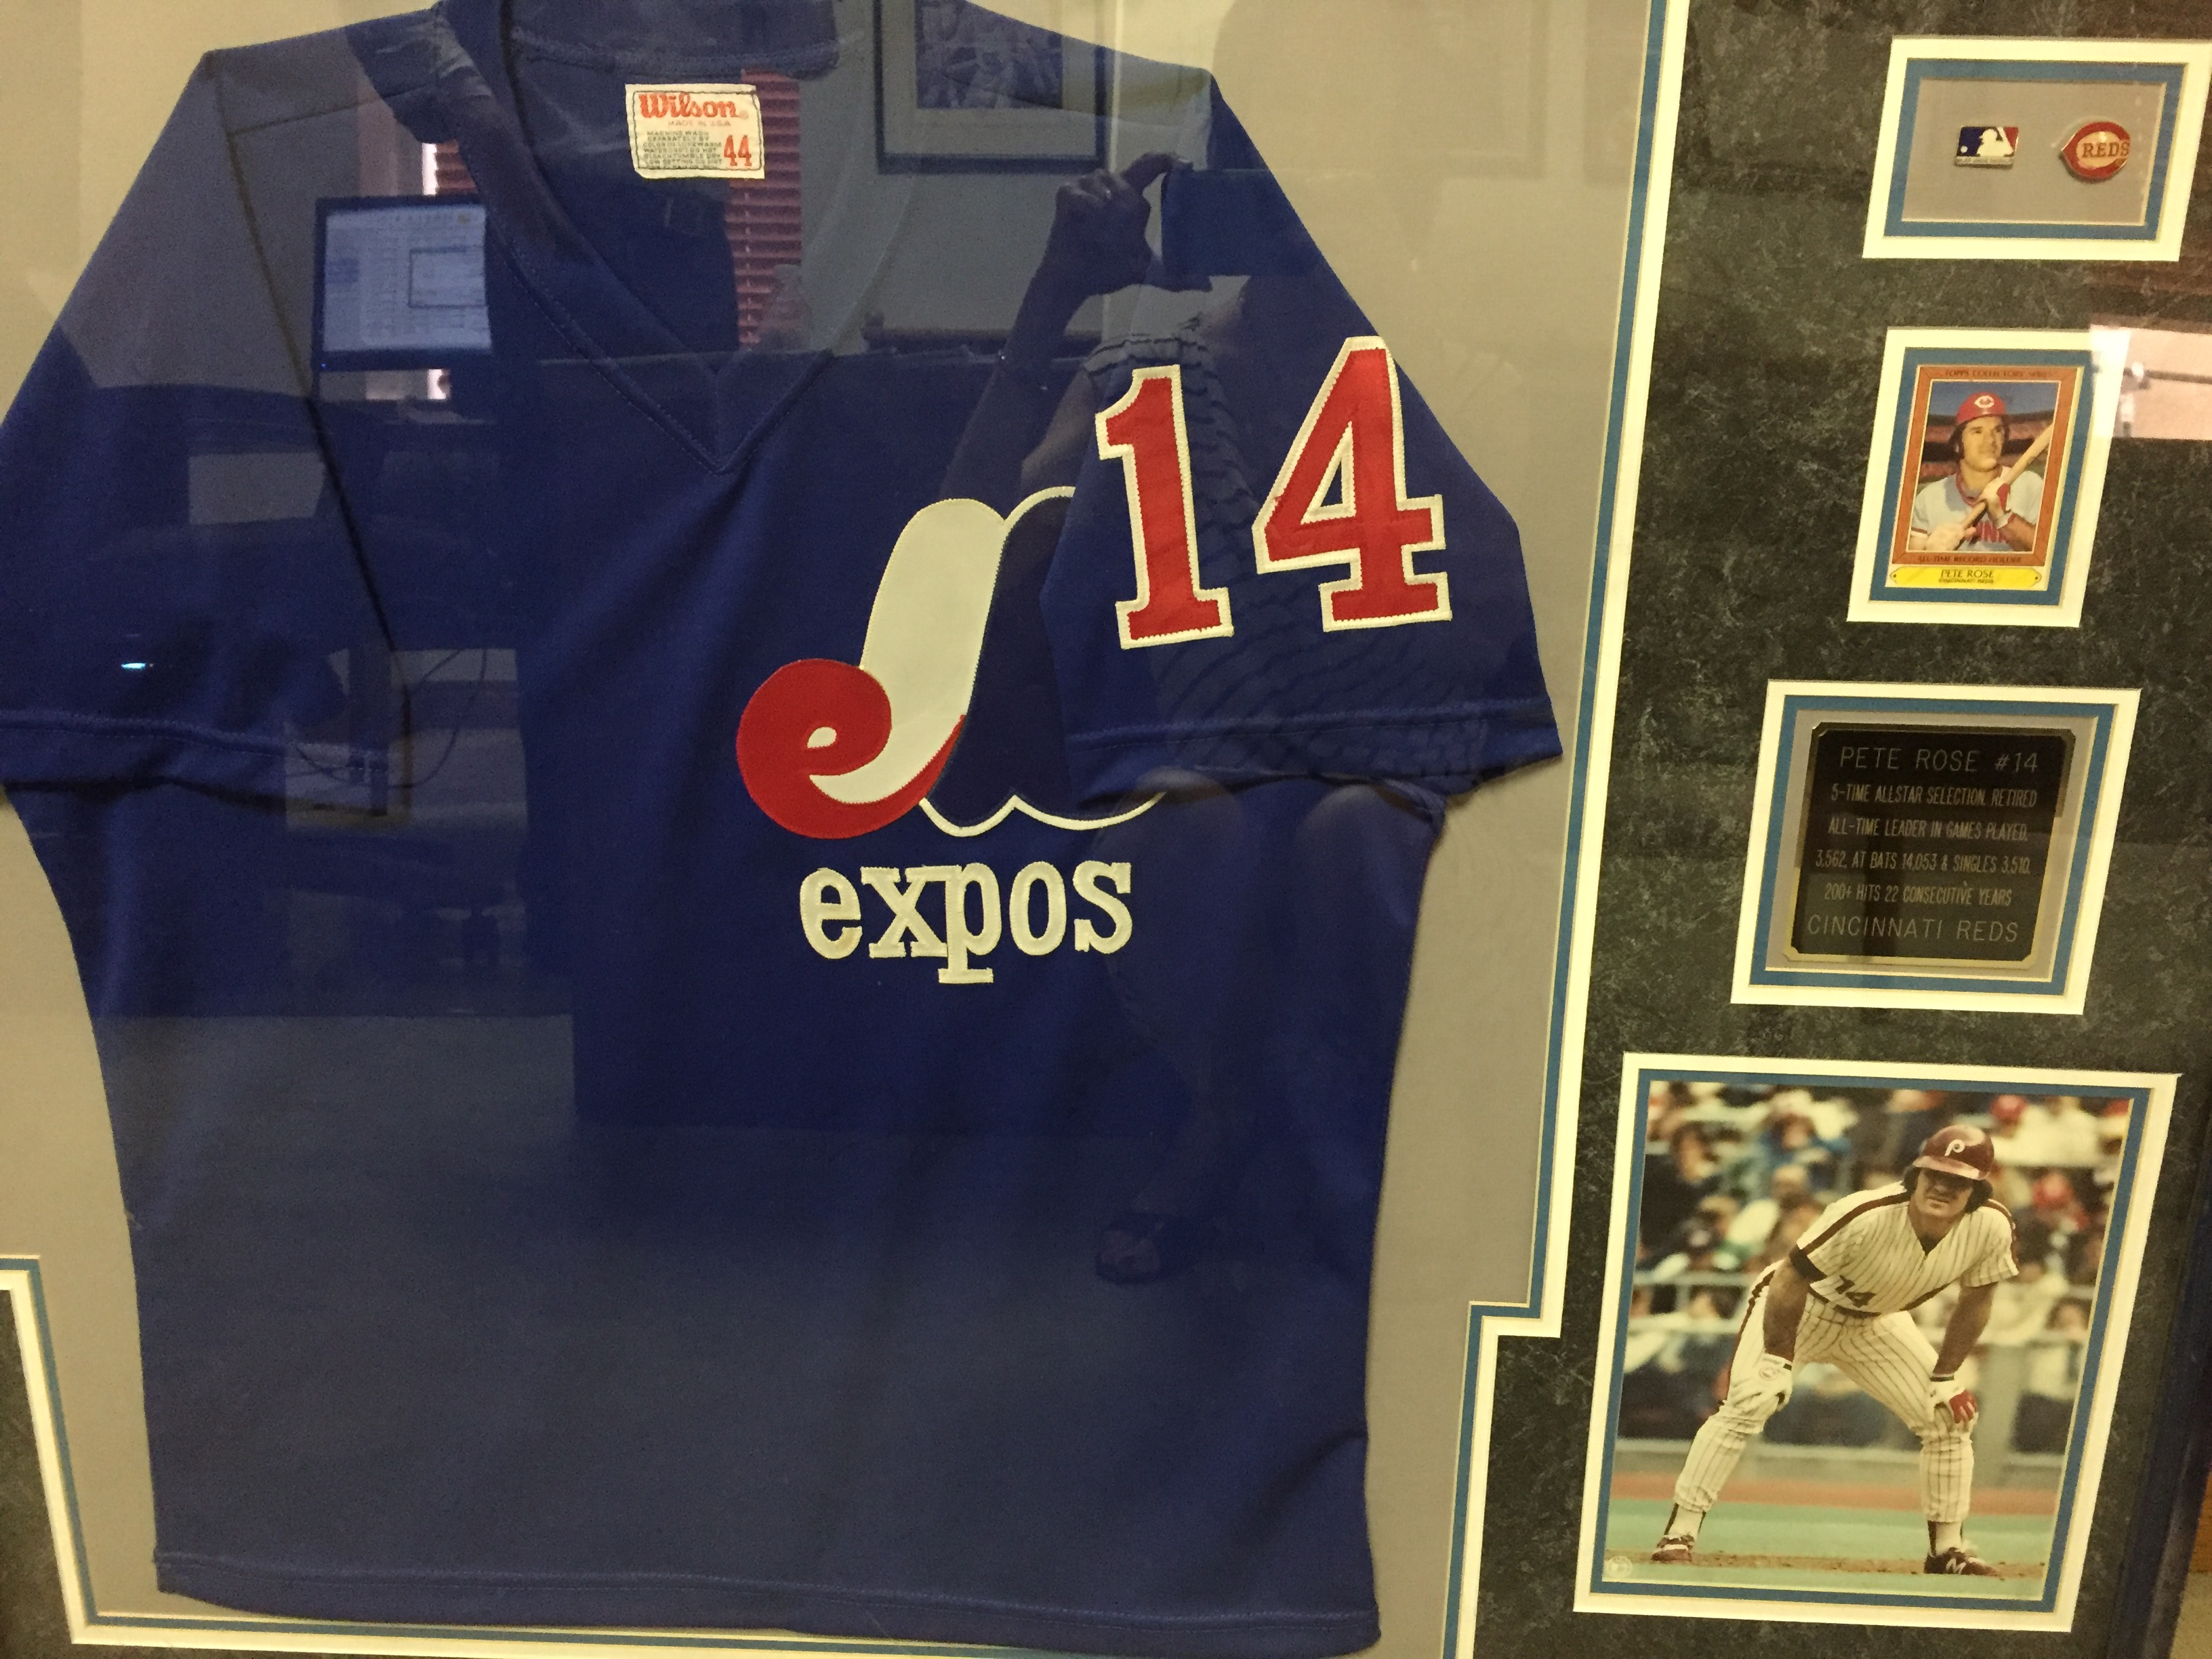 Pete Rose signed Expos jersey